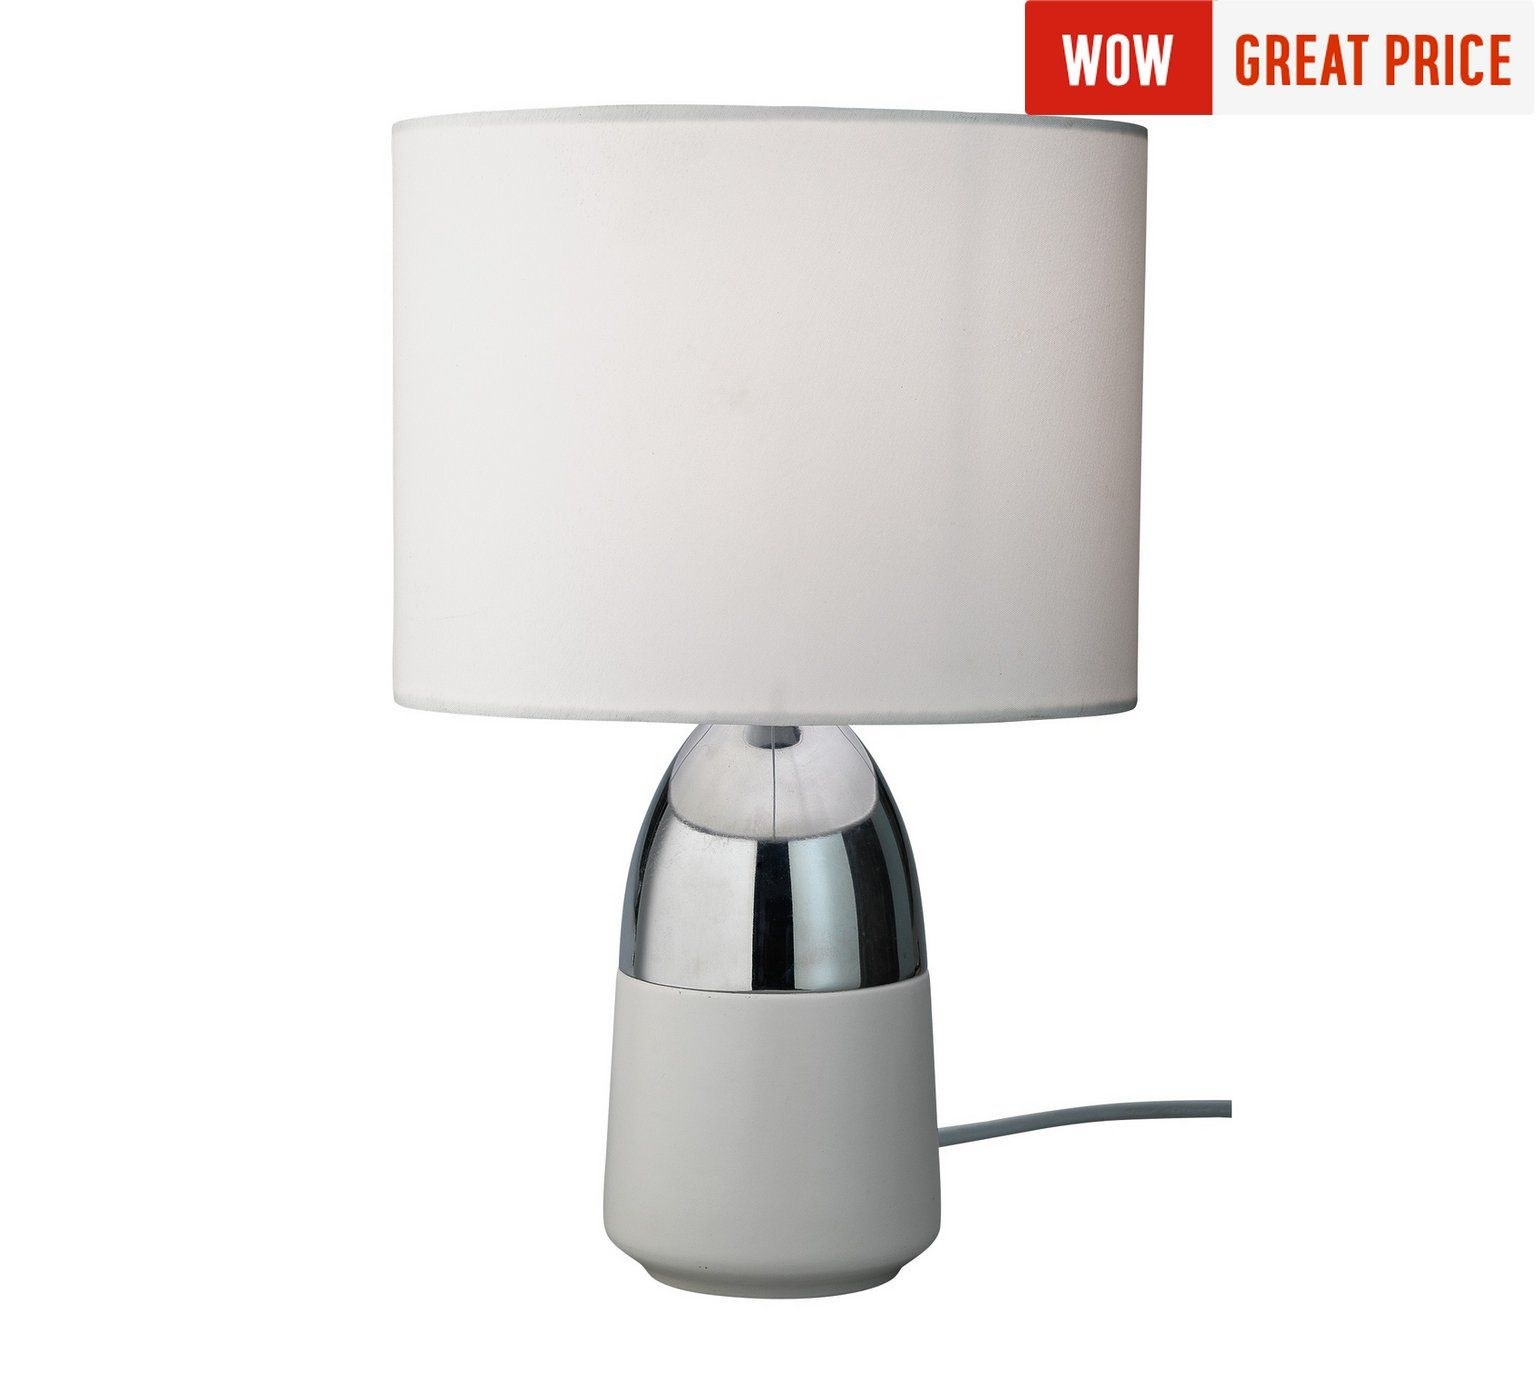 Buy home duno touch table lamp white chrome at argos buy home duno touch table lamp white chrome at argos aloadofball Image collections